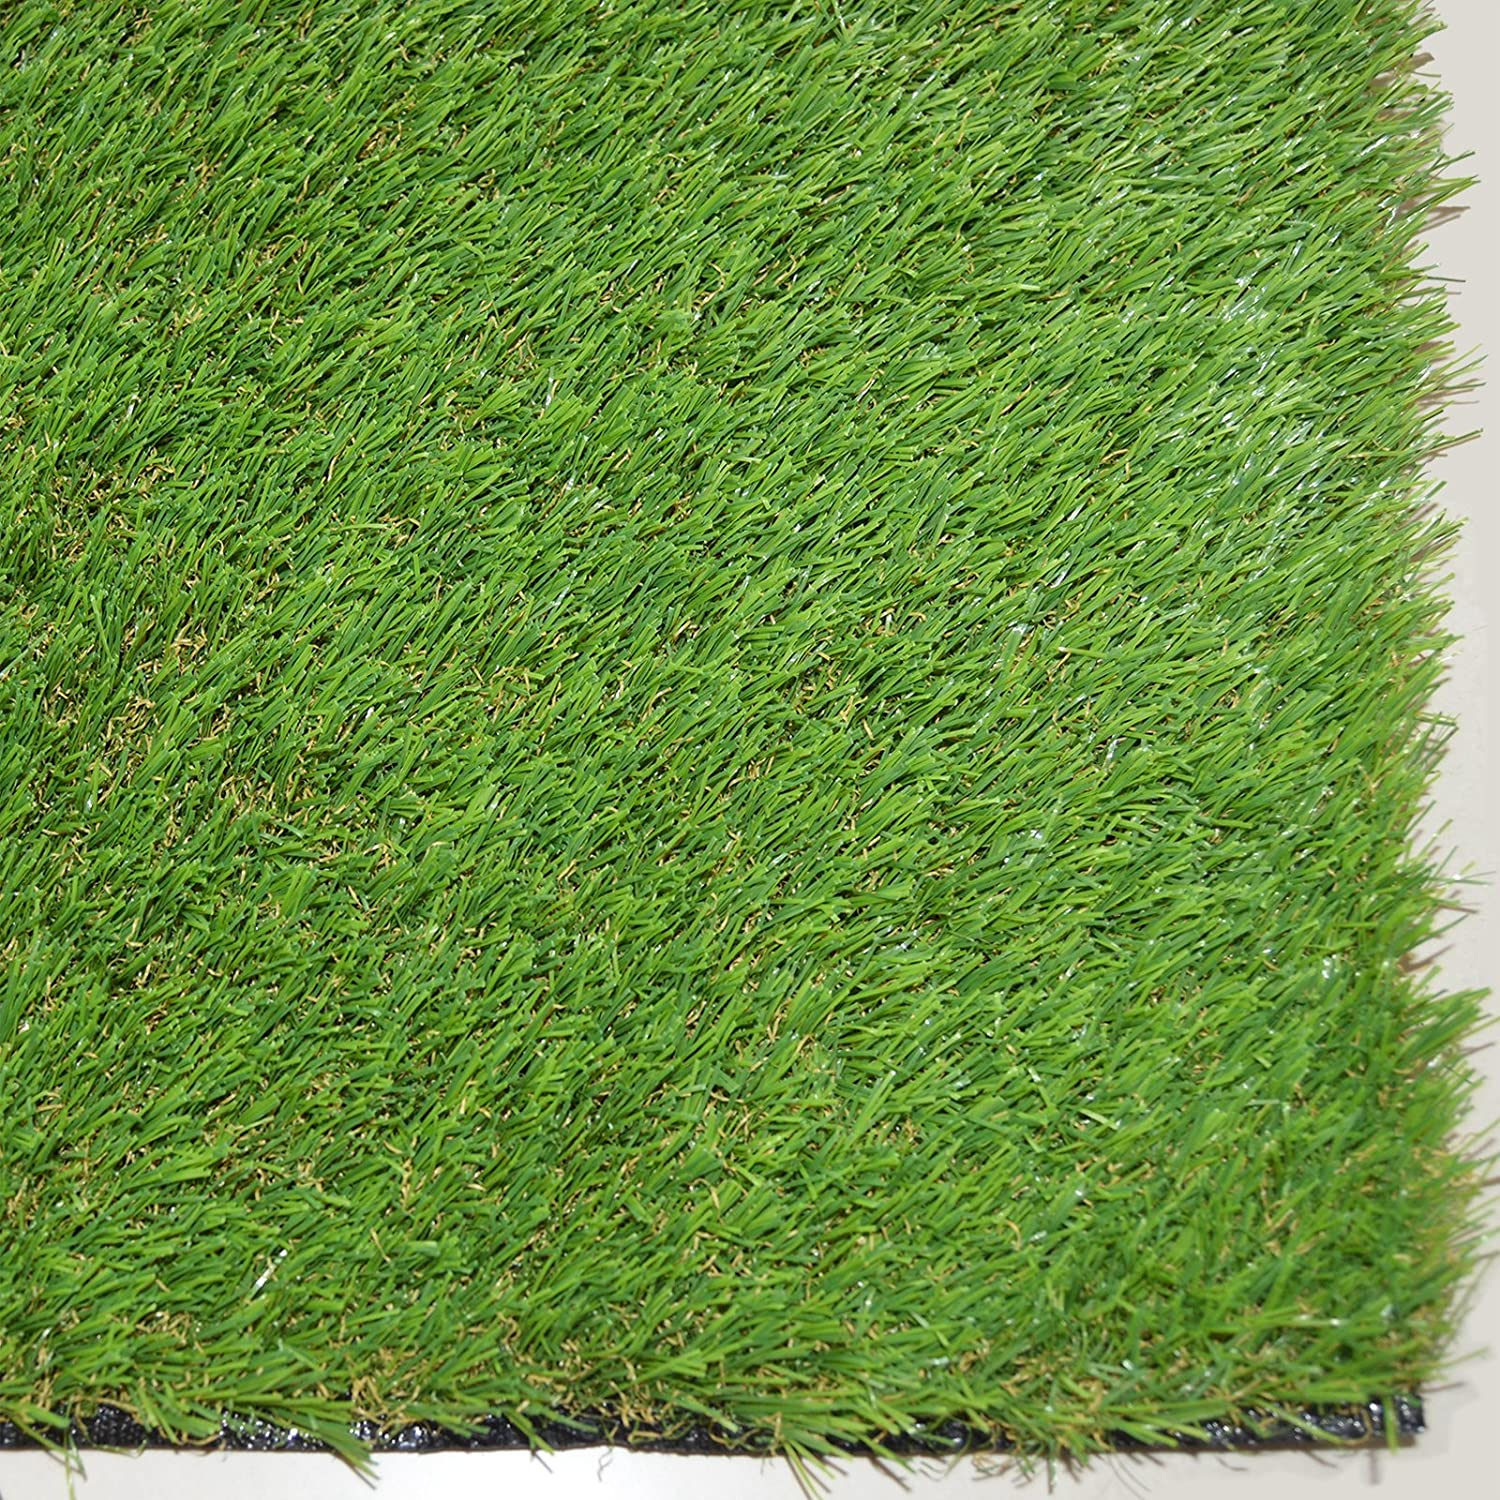 Synthetic turf artificial lawn fake grass indoor